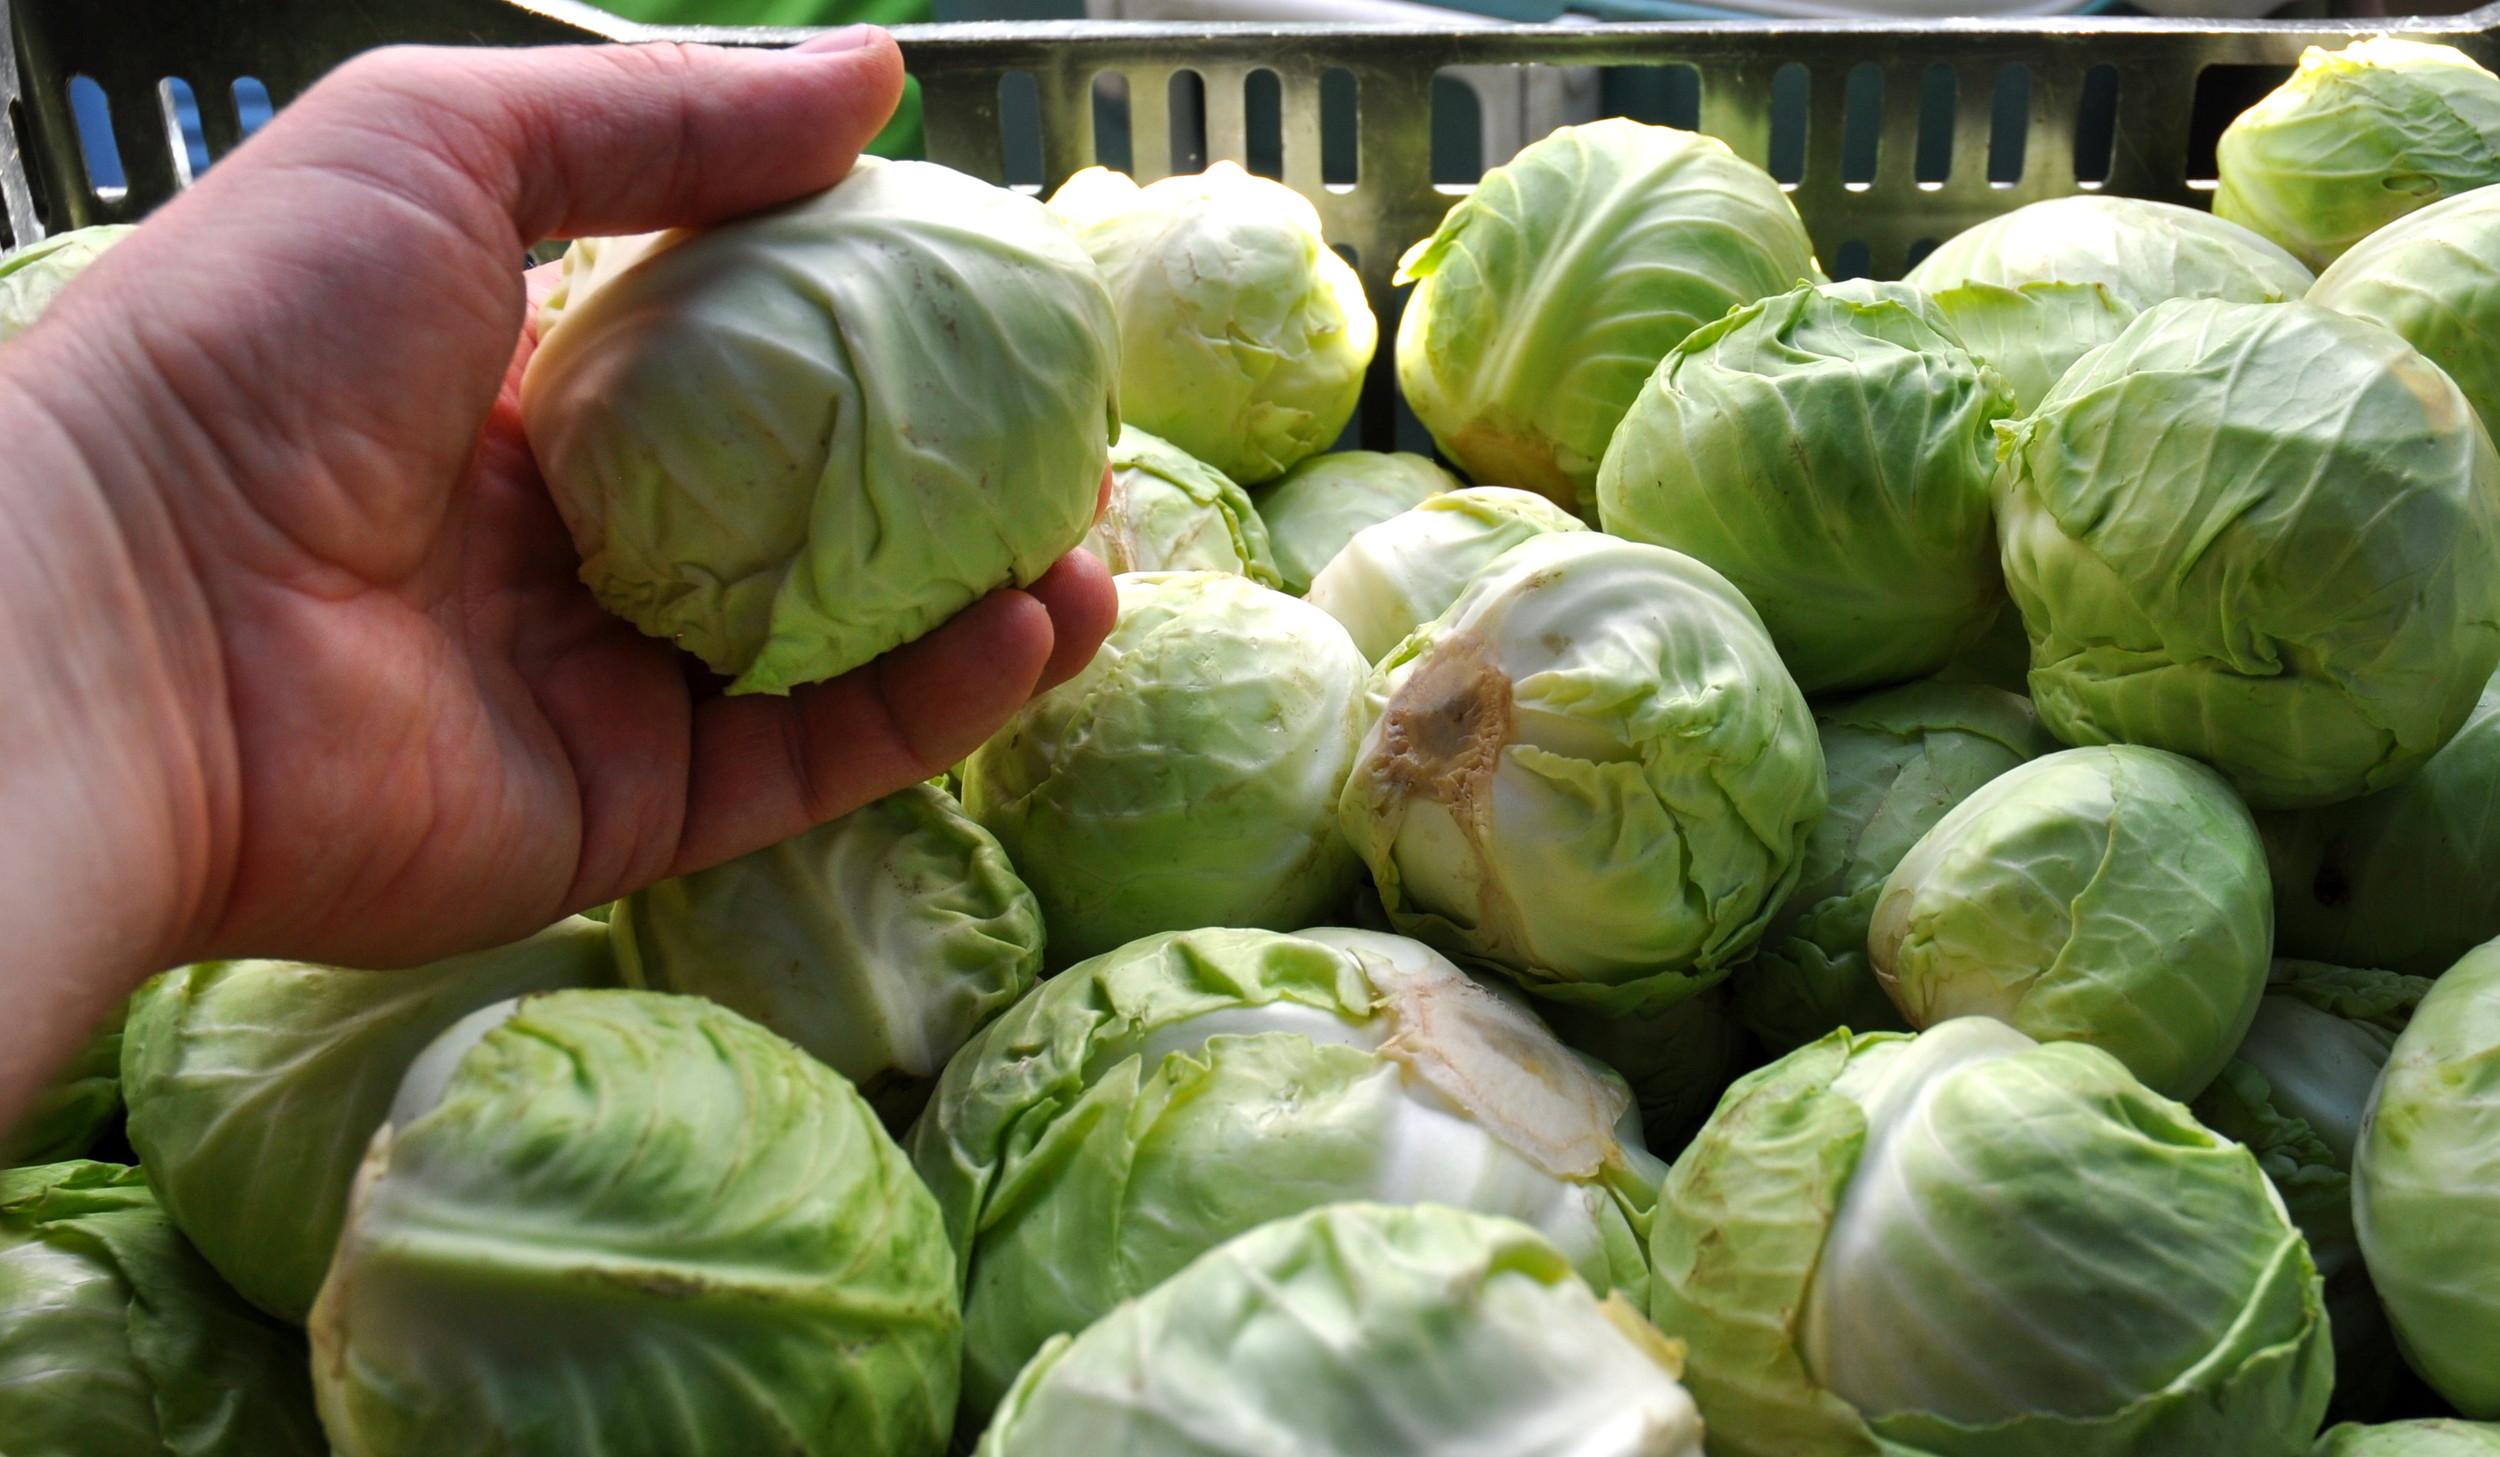 Baby cabbages from Stoney Plains Organic Farm. Photo copyright 2014 by Zachary D. Lyons.